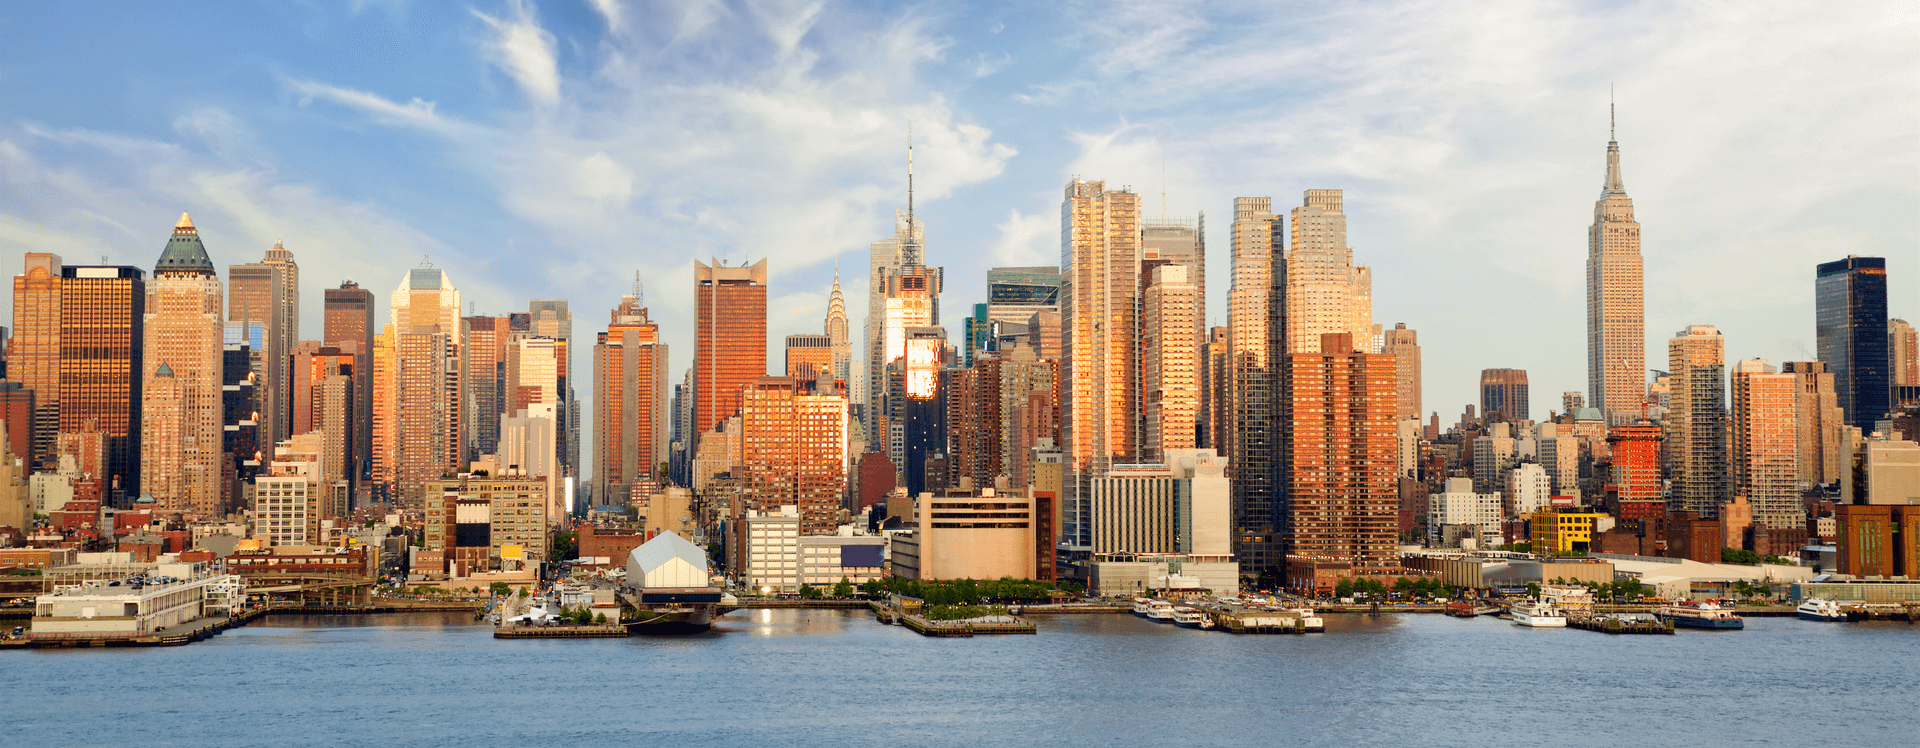 5 Key Medium-Term Factors Shaping Commercial Real Estate in NYC